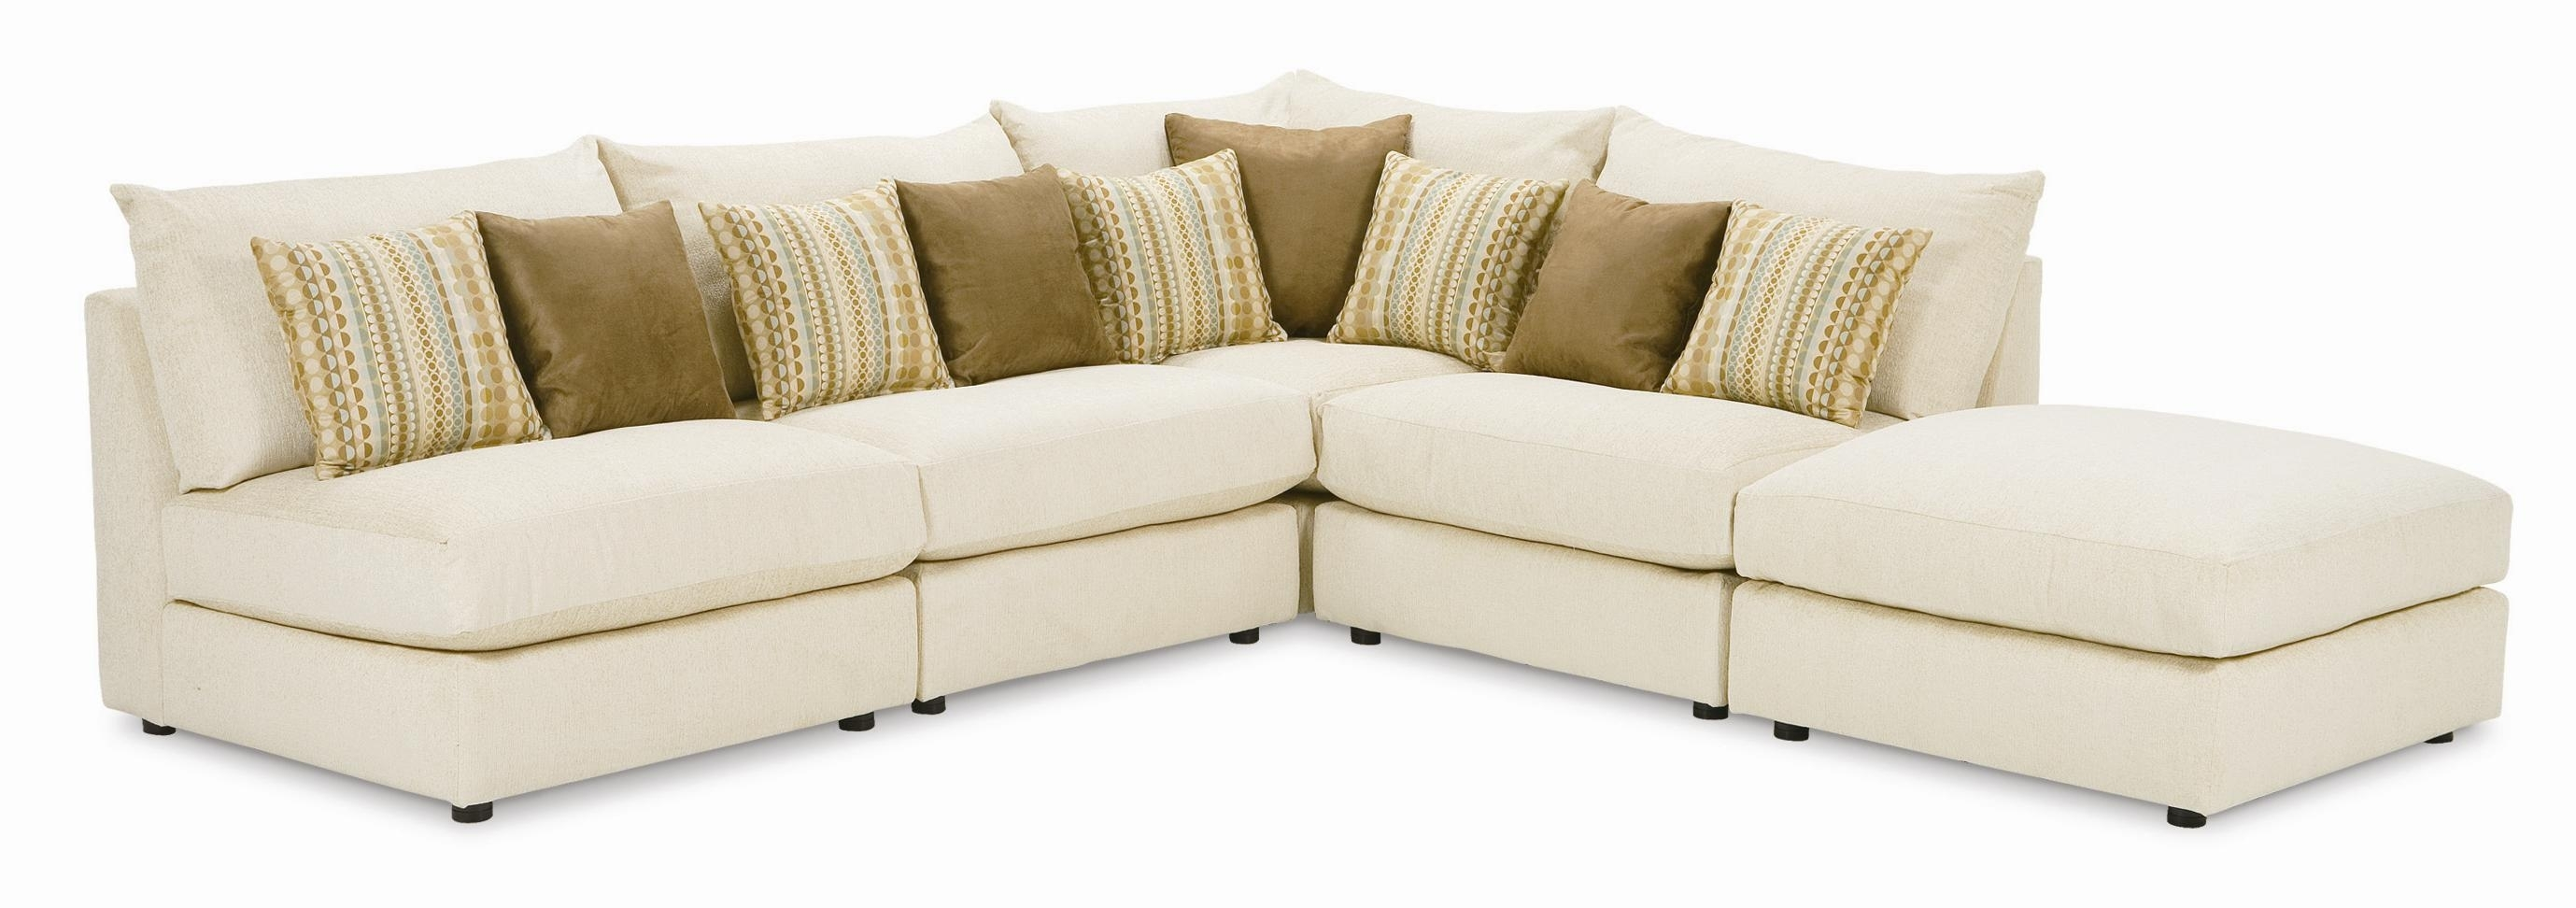 Cool Armless Sectional Sofa , Epic Armless Sectional Sofa 53 On Throughout Small Armless Sofas (Image 2 of 10)